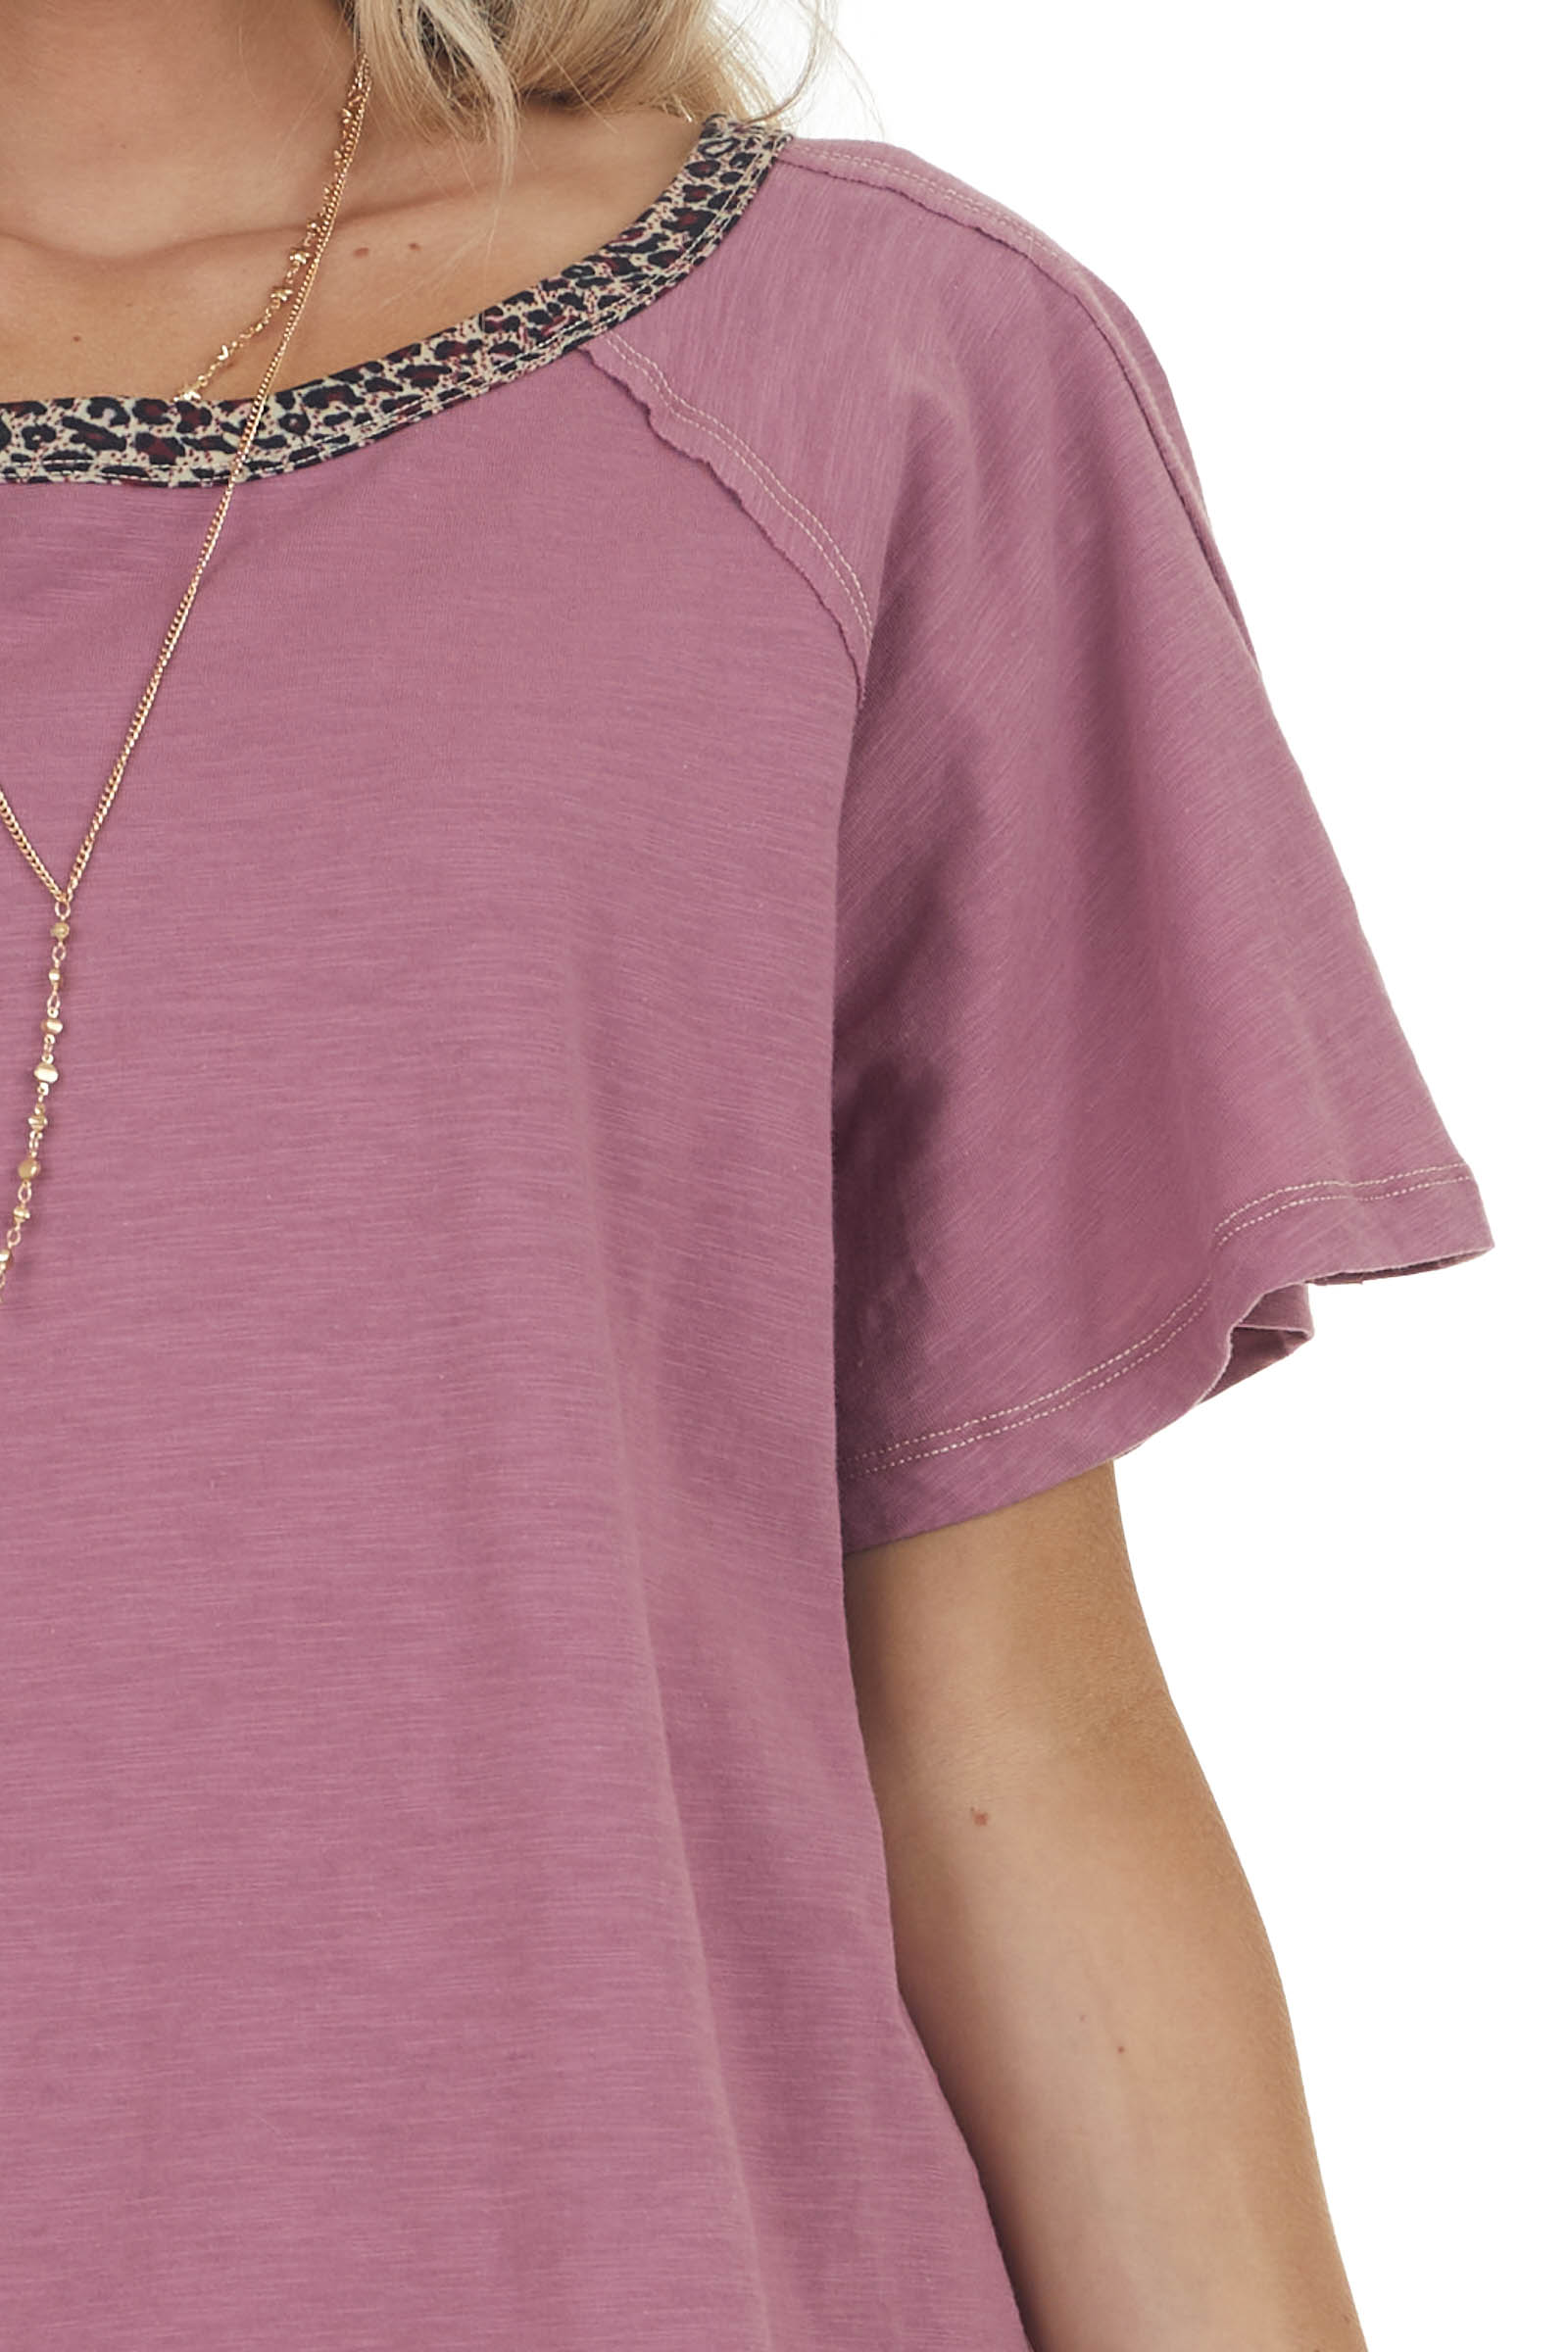 Heathered Berry Knit Top with Leopard Print Neckline